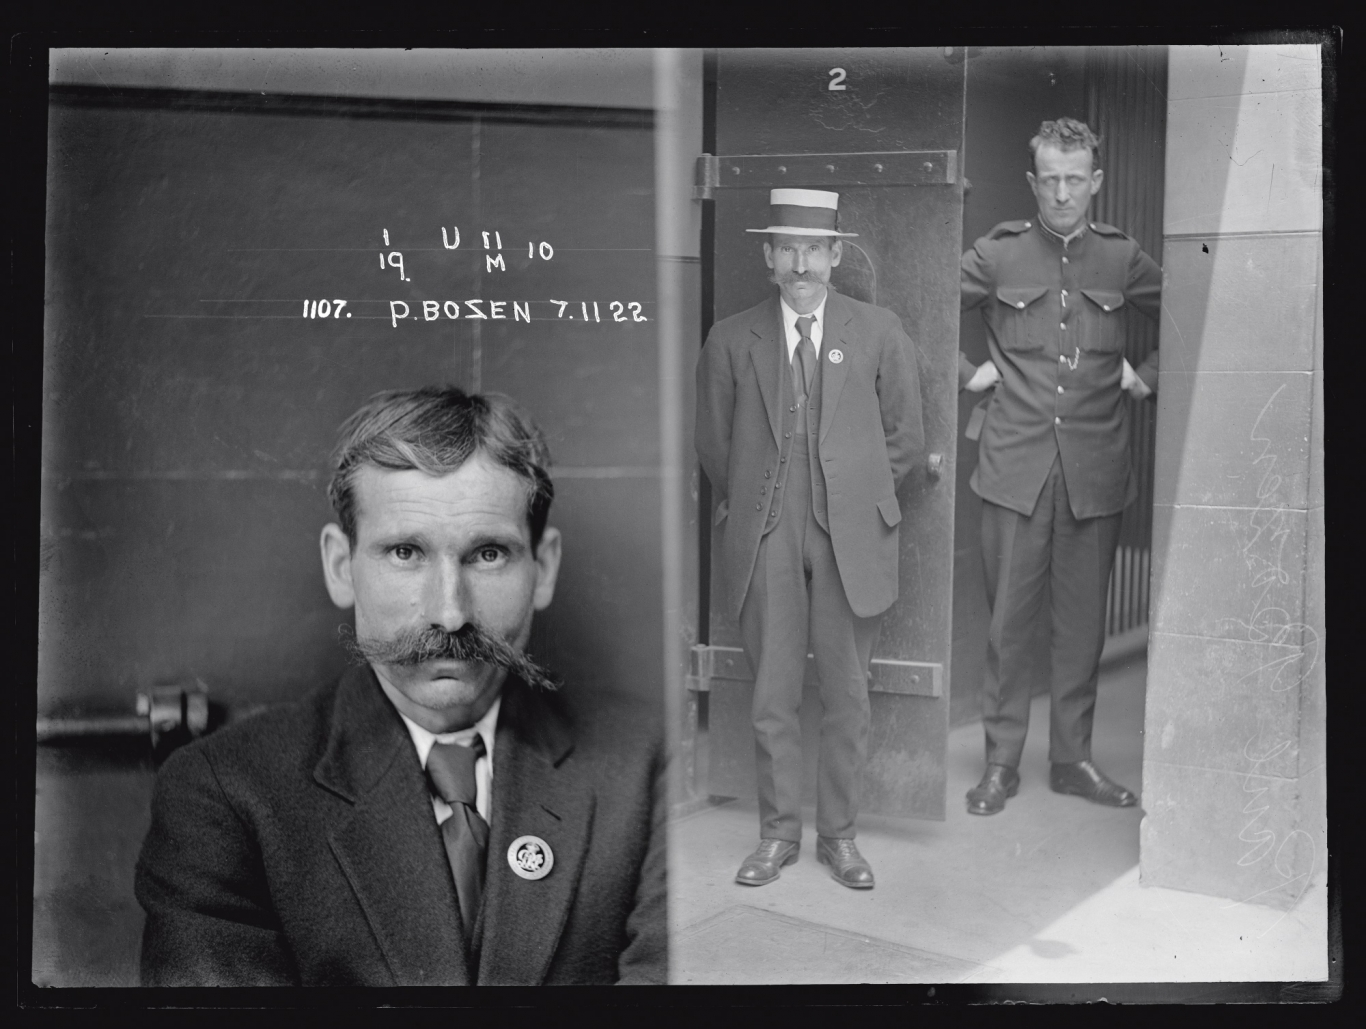 Dual mugshot; man seated, left and standing with hat next to police officer, right.